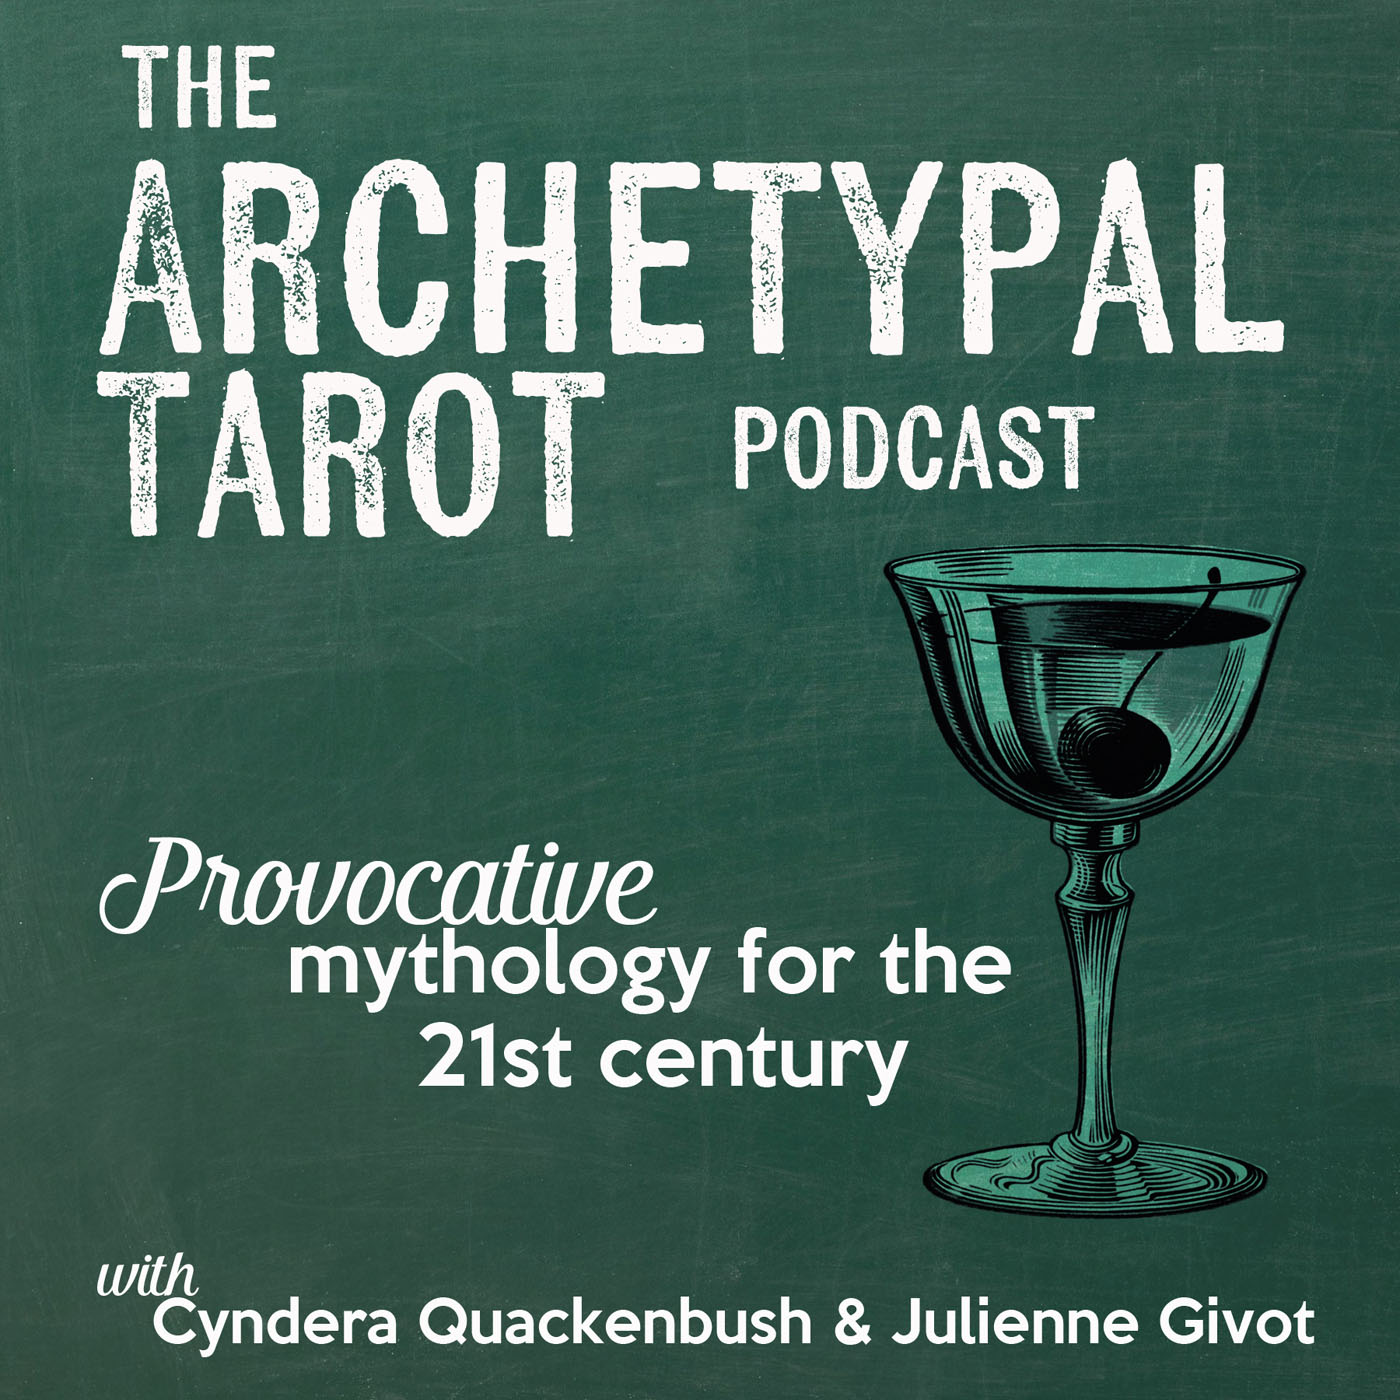 The Archetypal Tarot Podcast